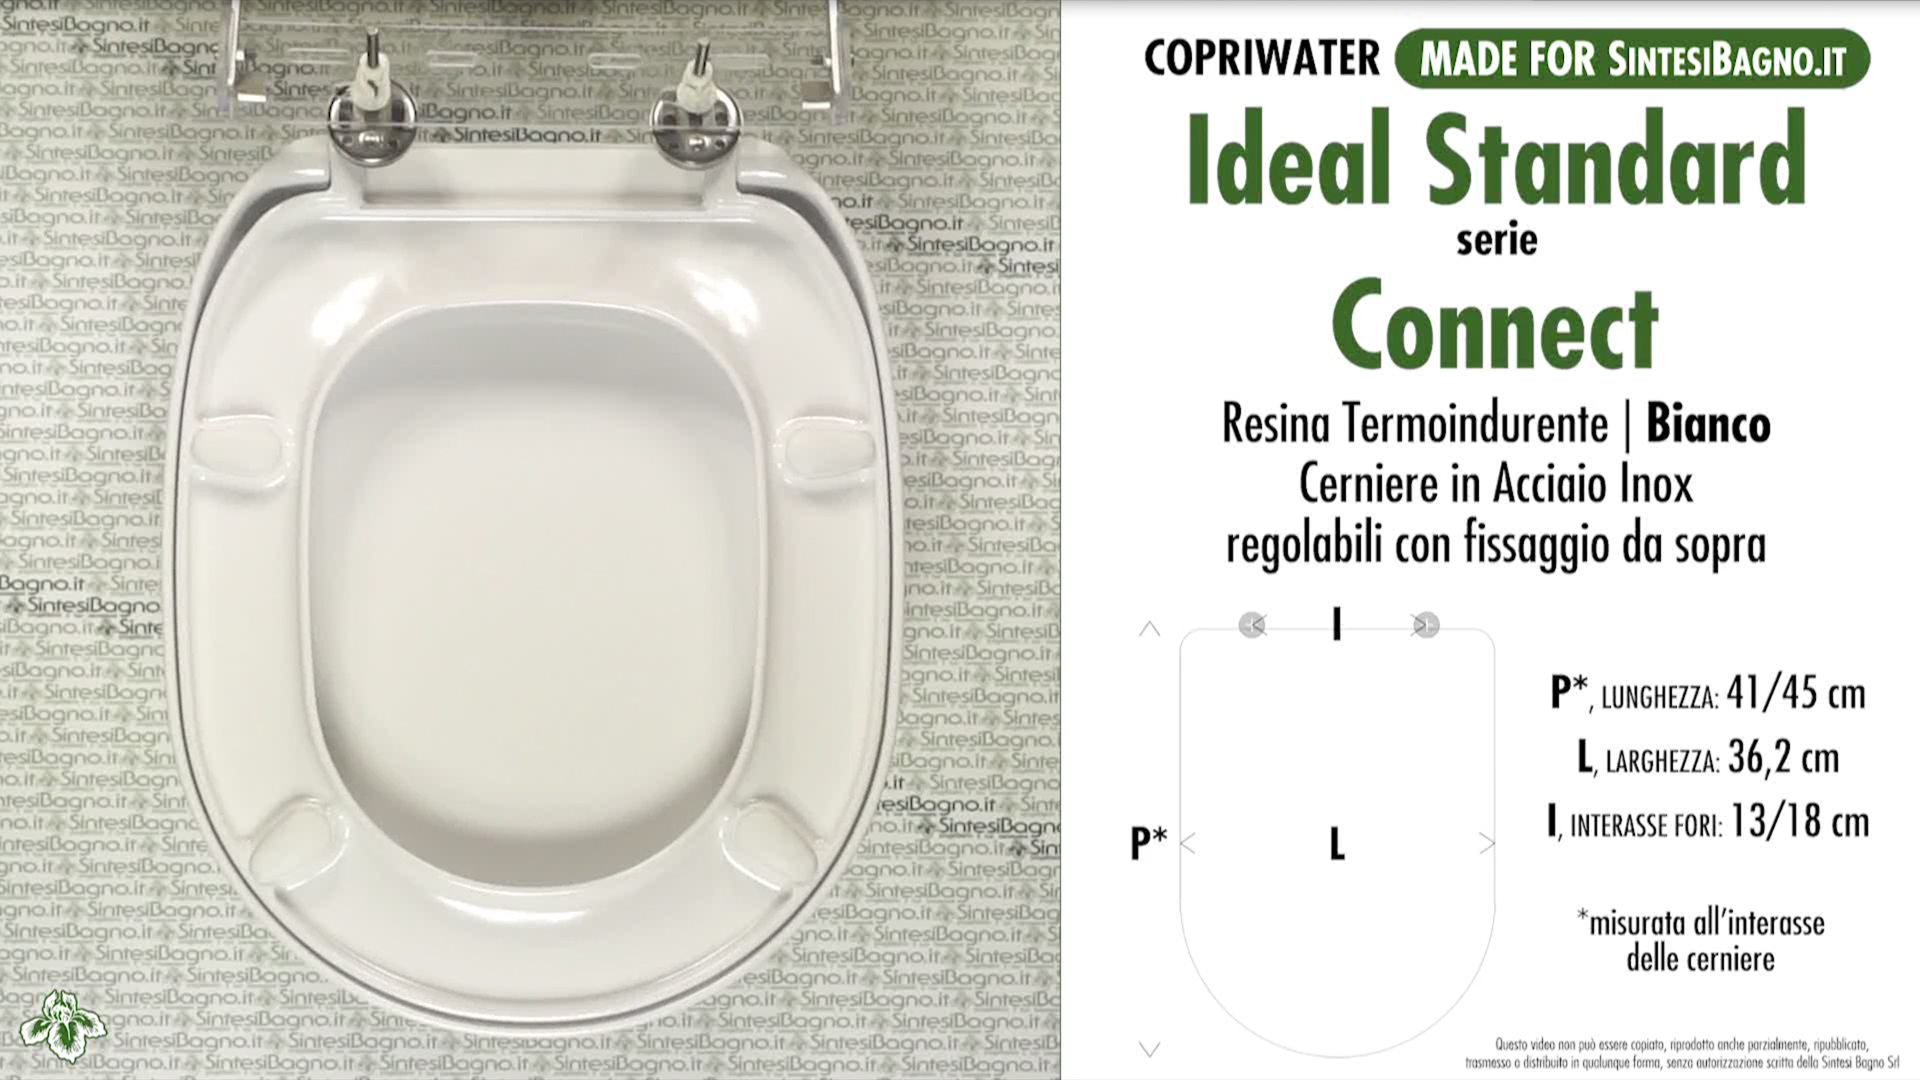 SCHEDA TECNICA MISURE copriwater IDEAL STANDARD CONNECT